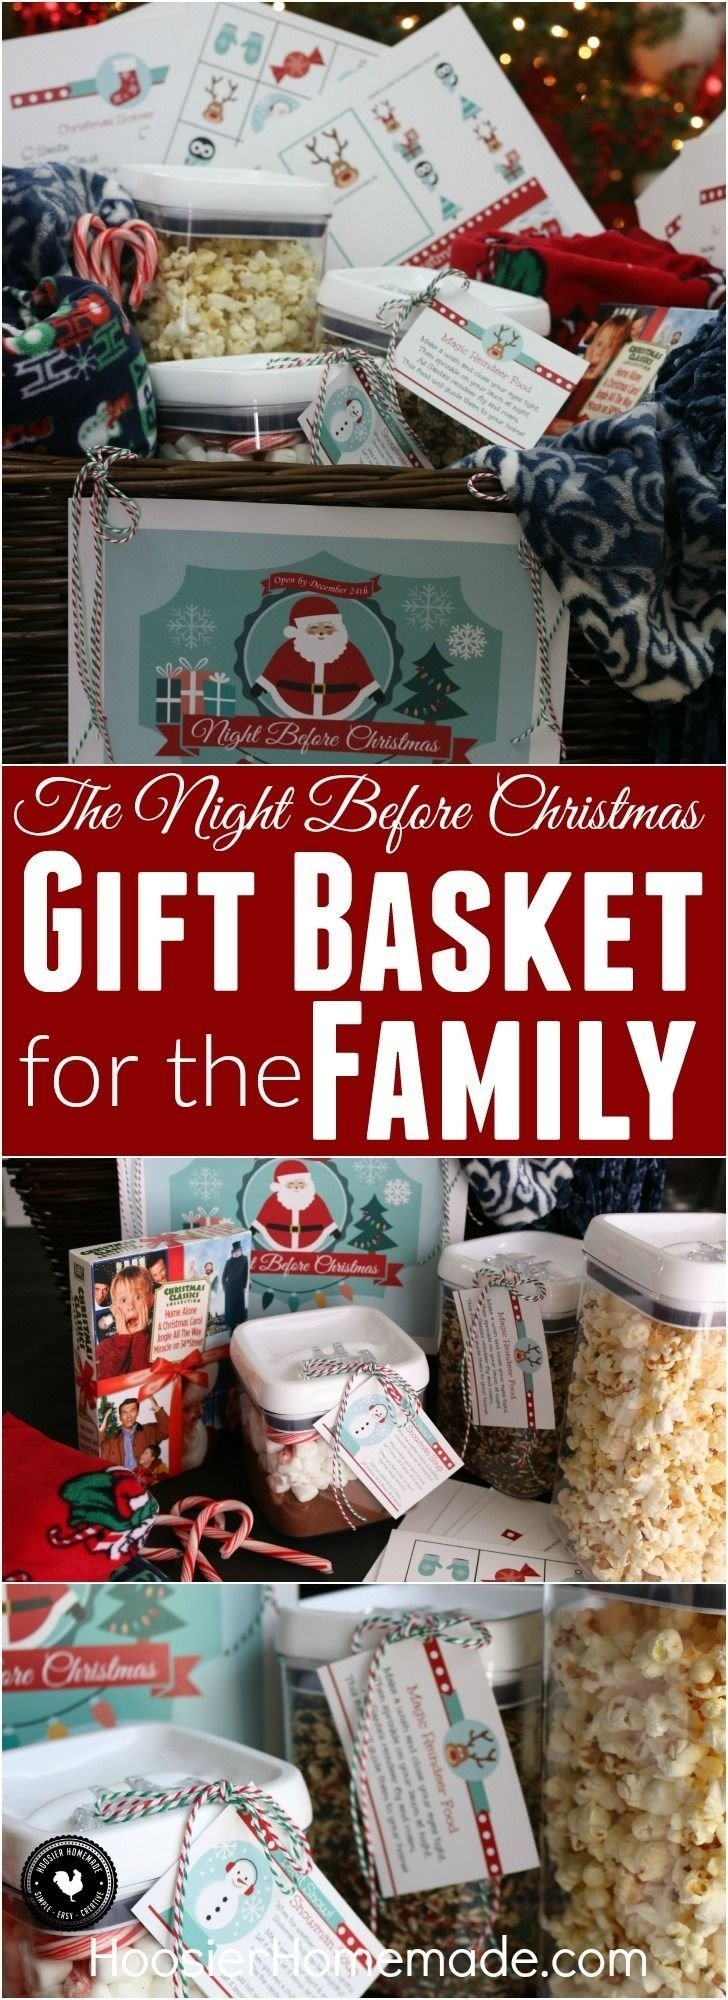 10 Ideal Whole Family Christmas Gift Ideas 930 best a tisket a basket images on pinterest gift basket ideas 2020